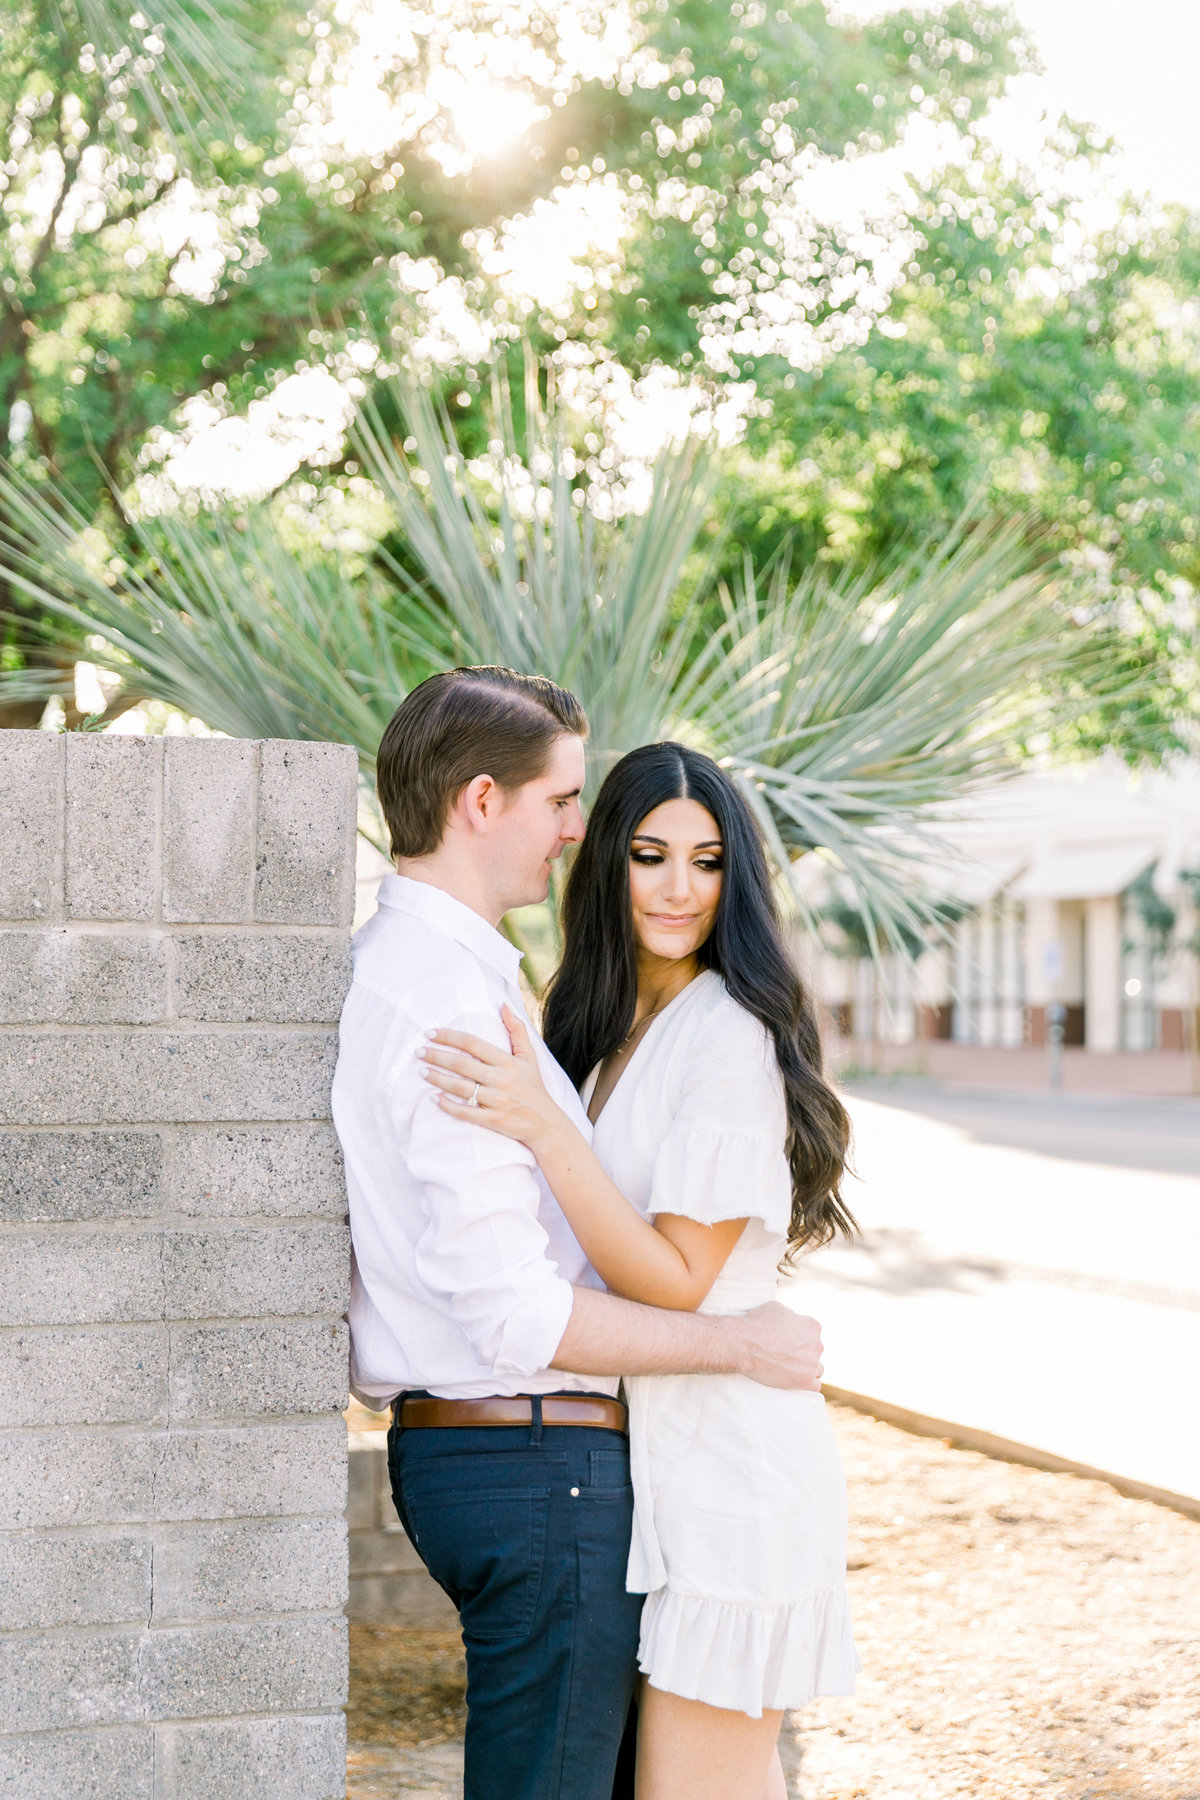 Karlie Colleen Photography - Arizona Engagement City Shoot - Kim & Tim-80